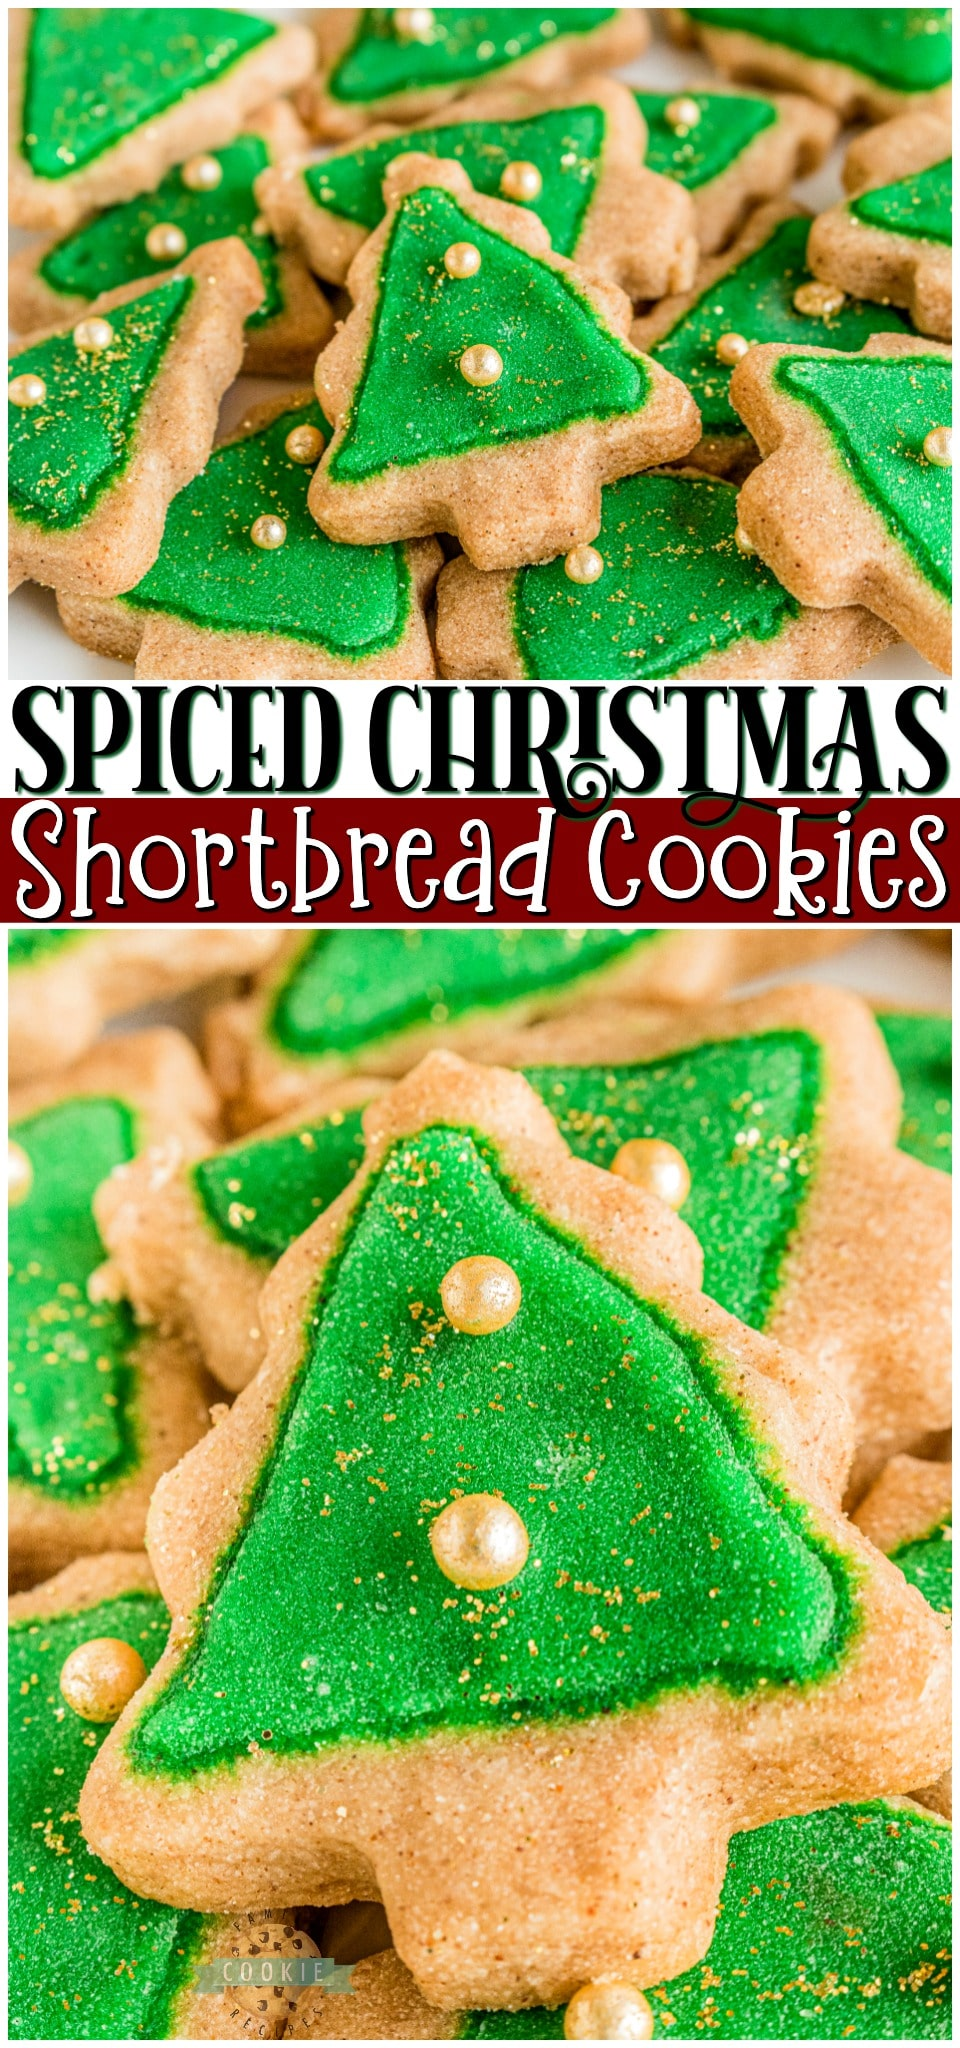 Spiced Christmas Shortbread Cookies made with cinnamon & allspice in the dough and topped with a simple icing recipe for perfect Christmas cookies! Buttery shortbread cookies with great flavor & texture for holiday baking.